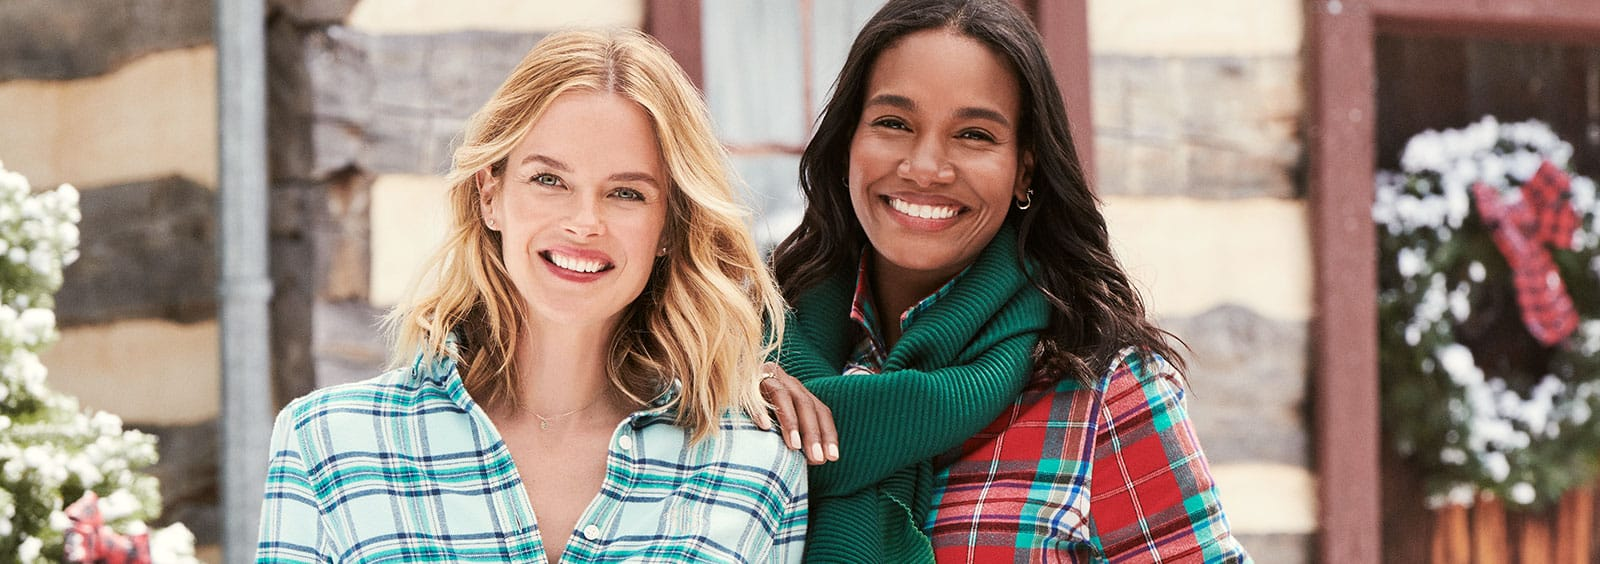 Flannel Layering Essentials for Fall and Winter